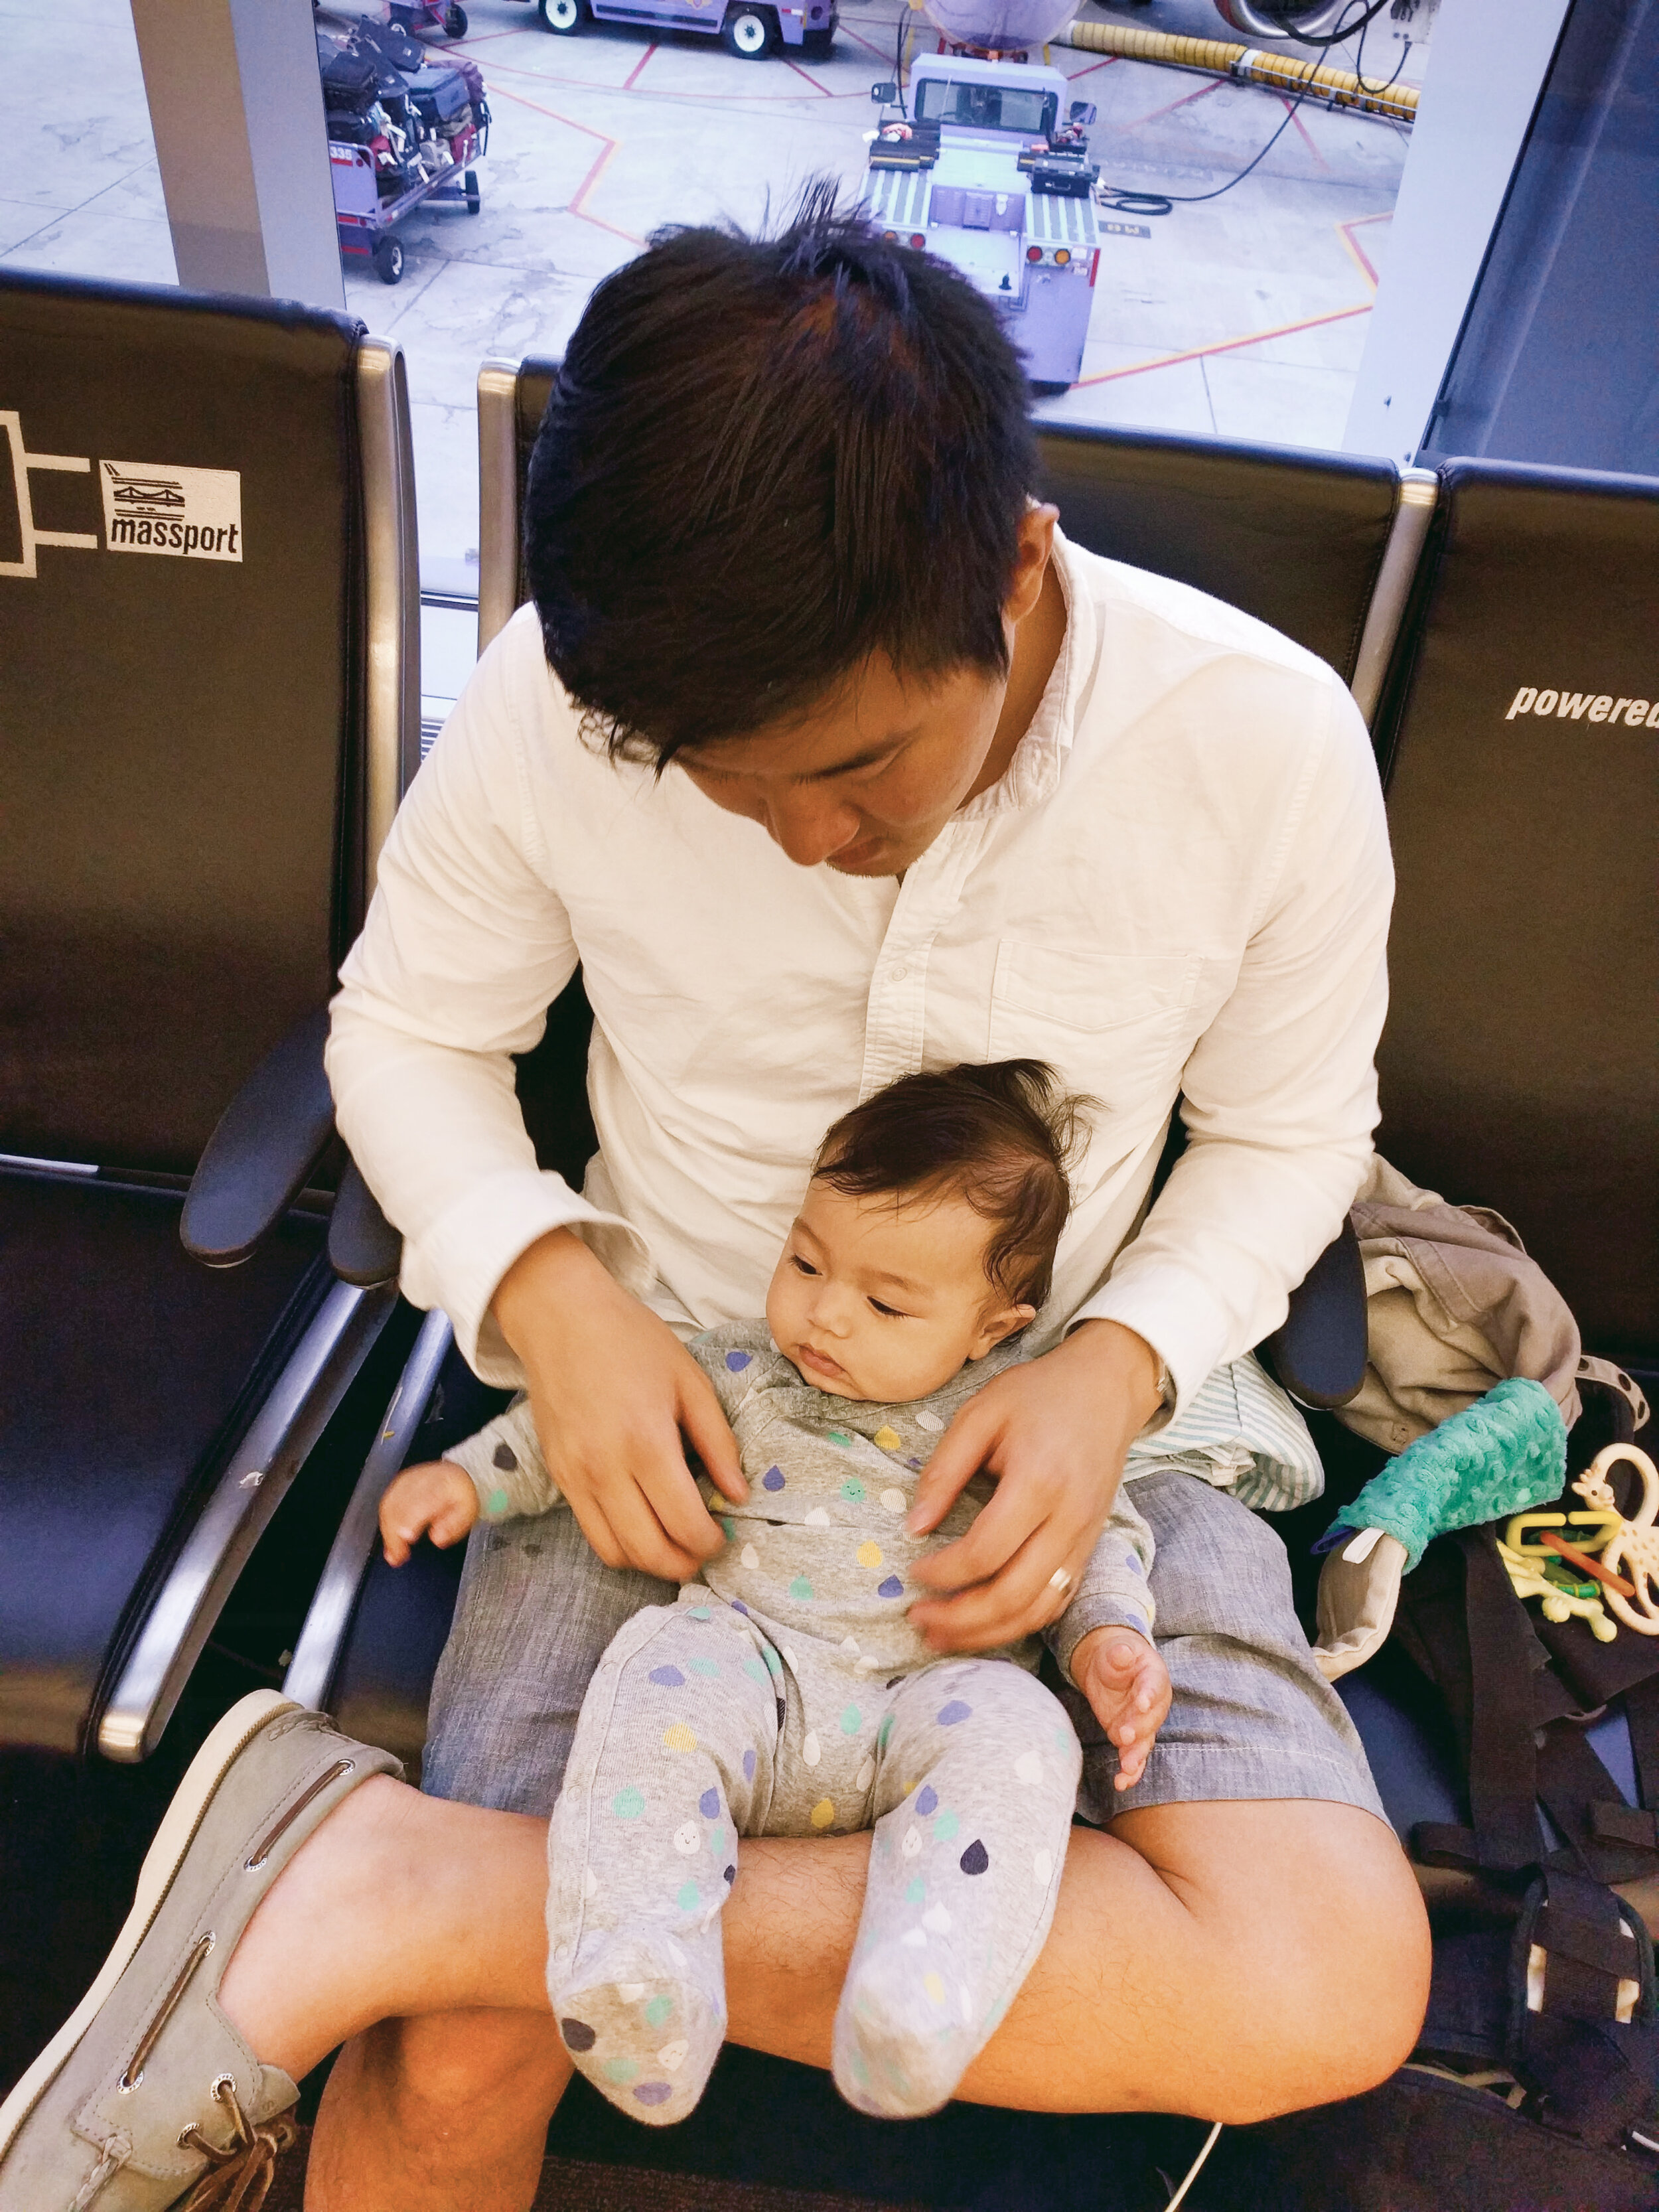 Steve and Elden (5 months old) waiting to board a flight out of BOS